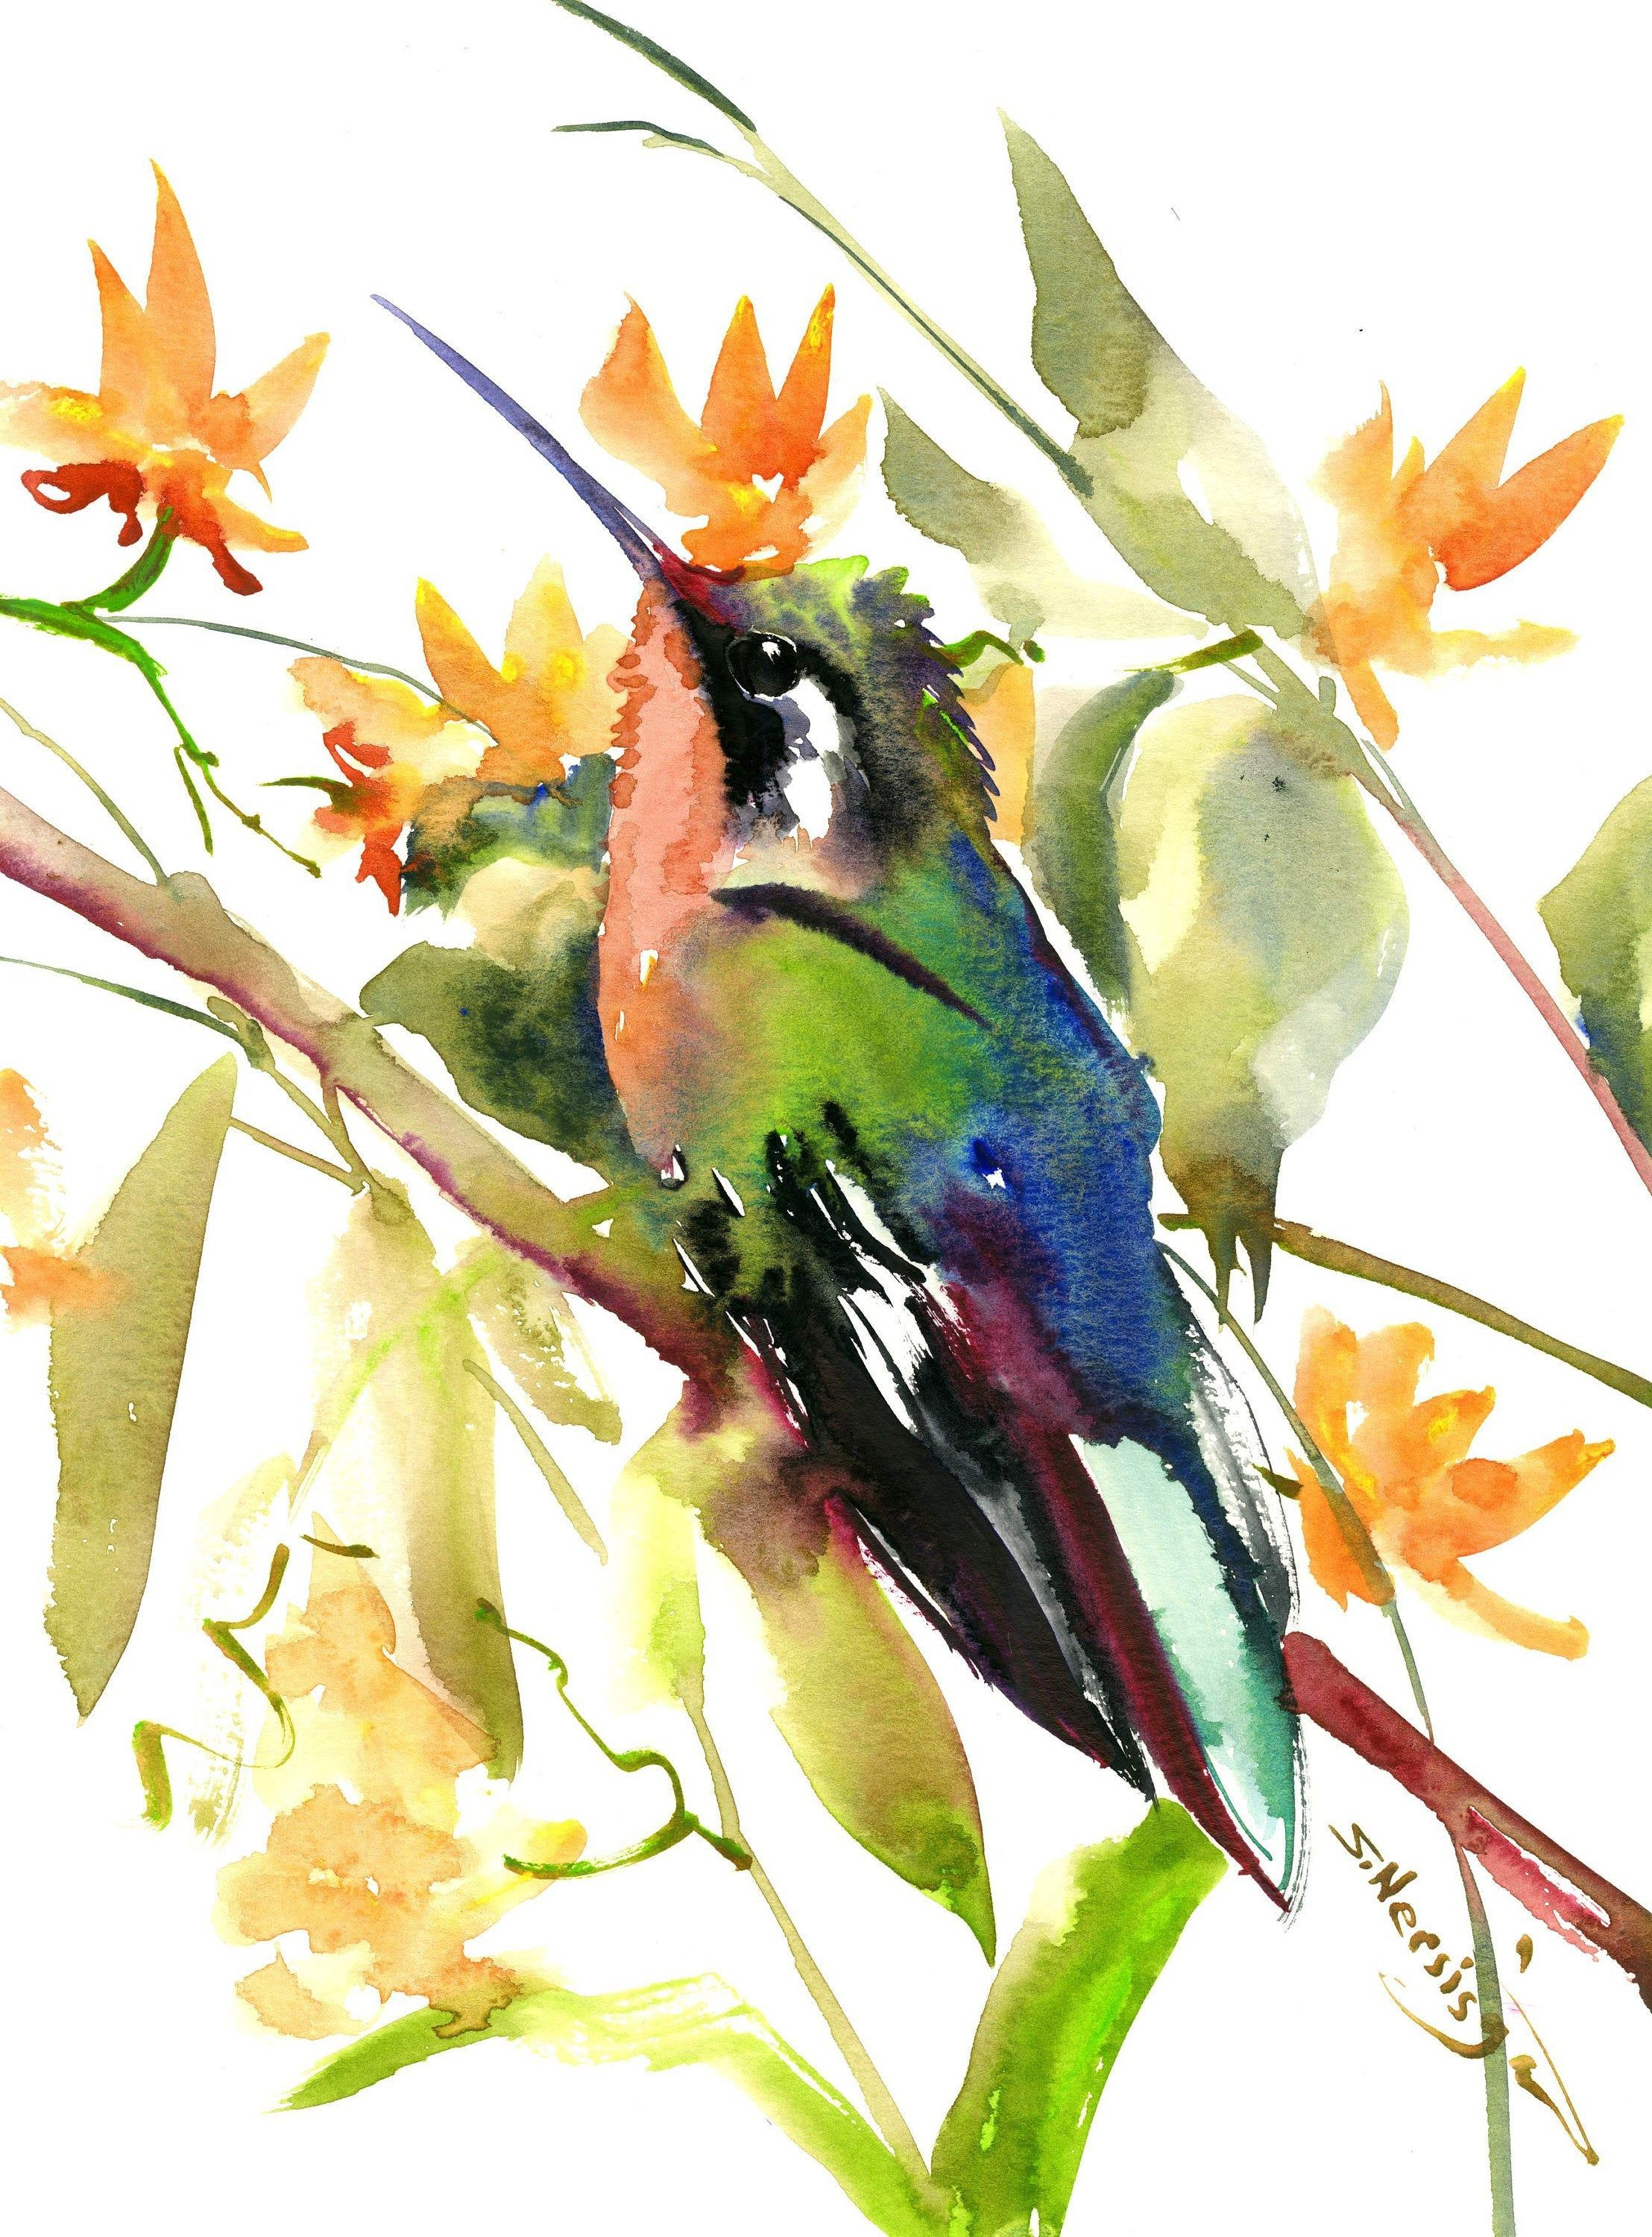 Hummingbird And Flowers Original Watercolor Painting By